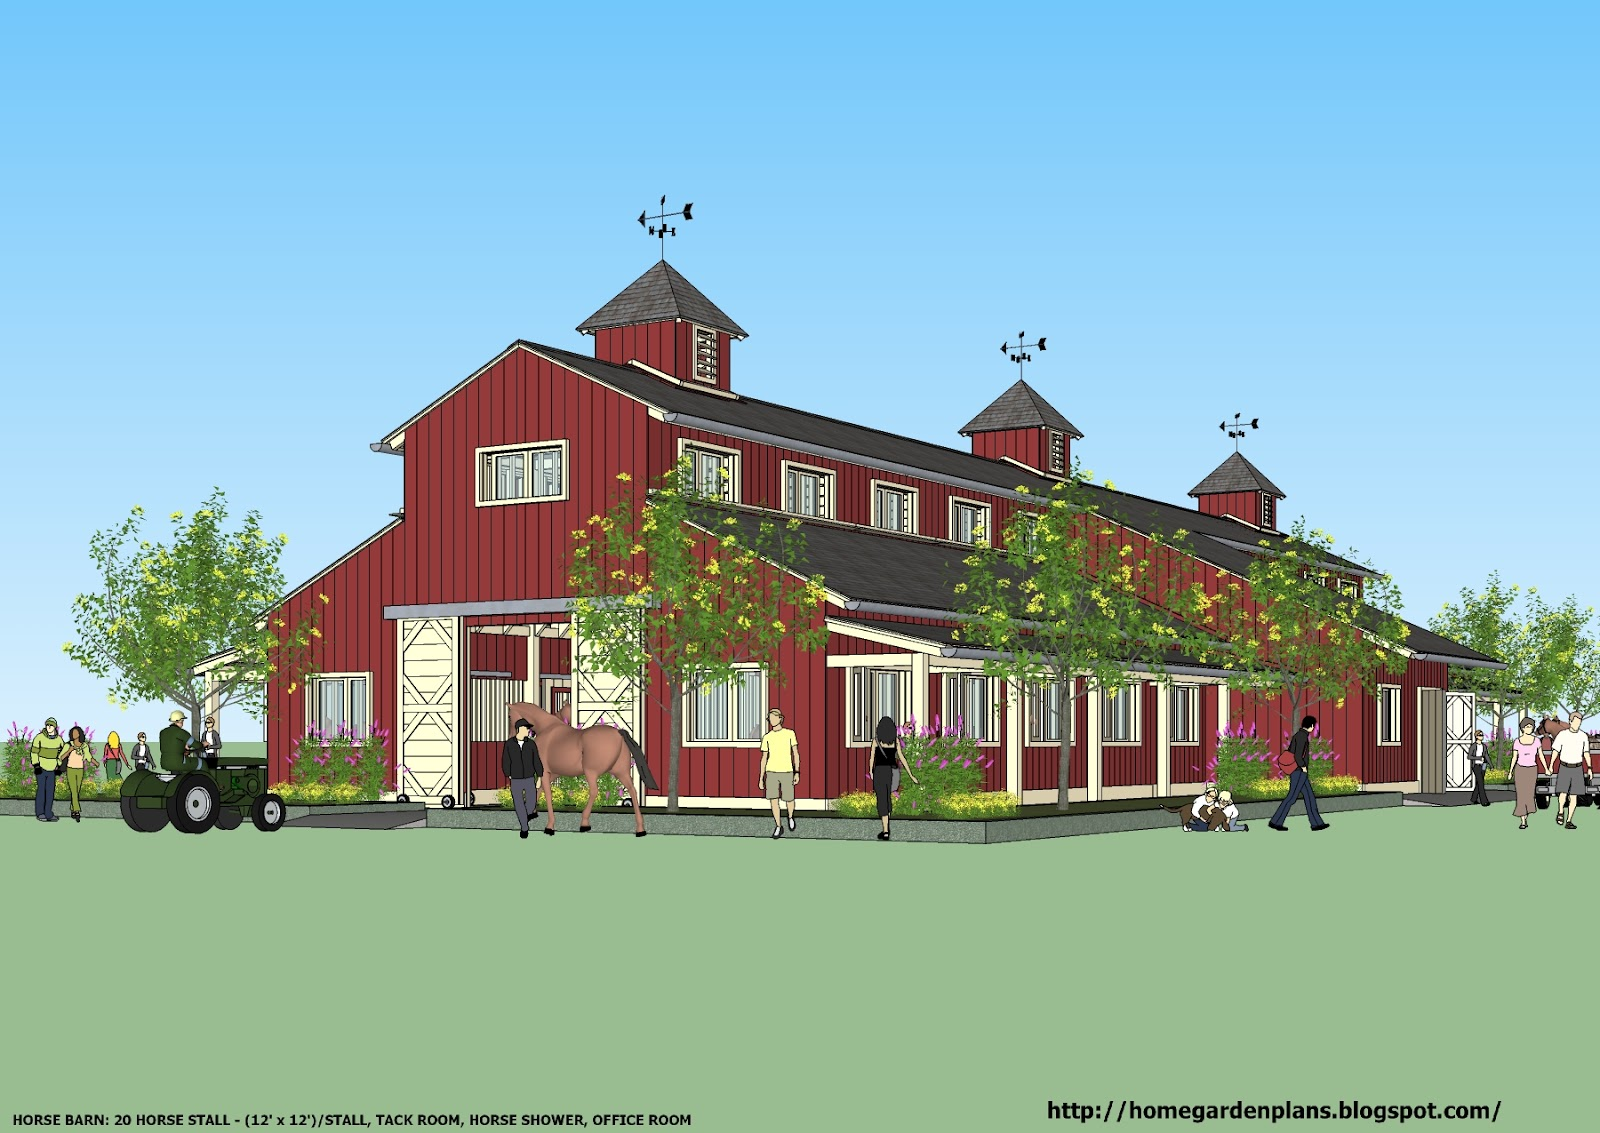 barn plans stable designs building plans for horse - 1200×630